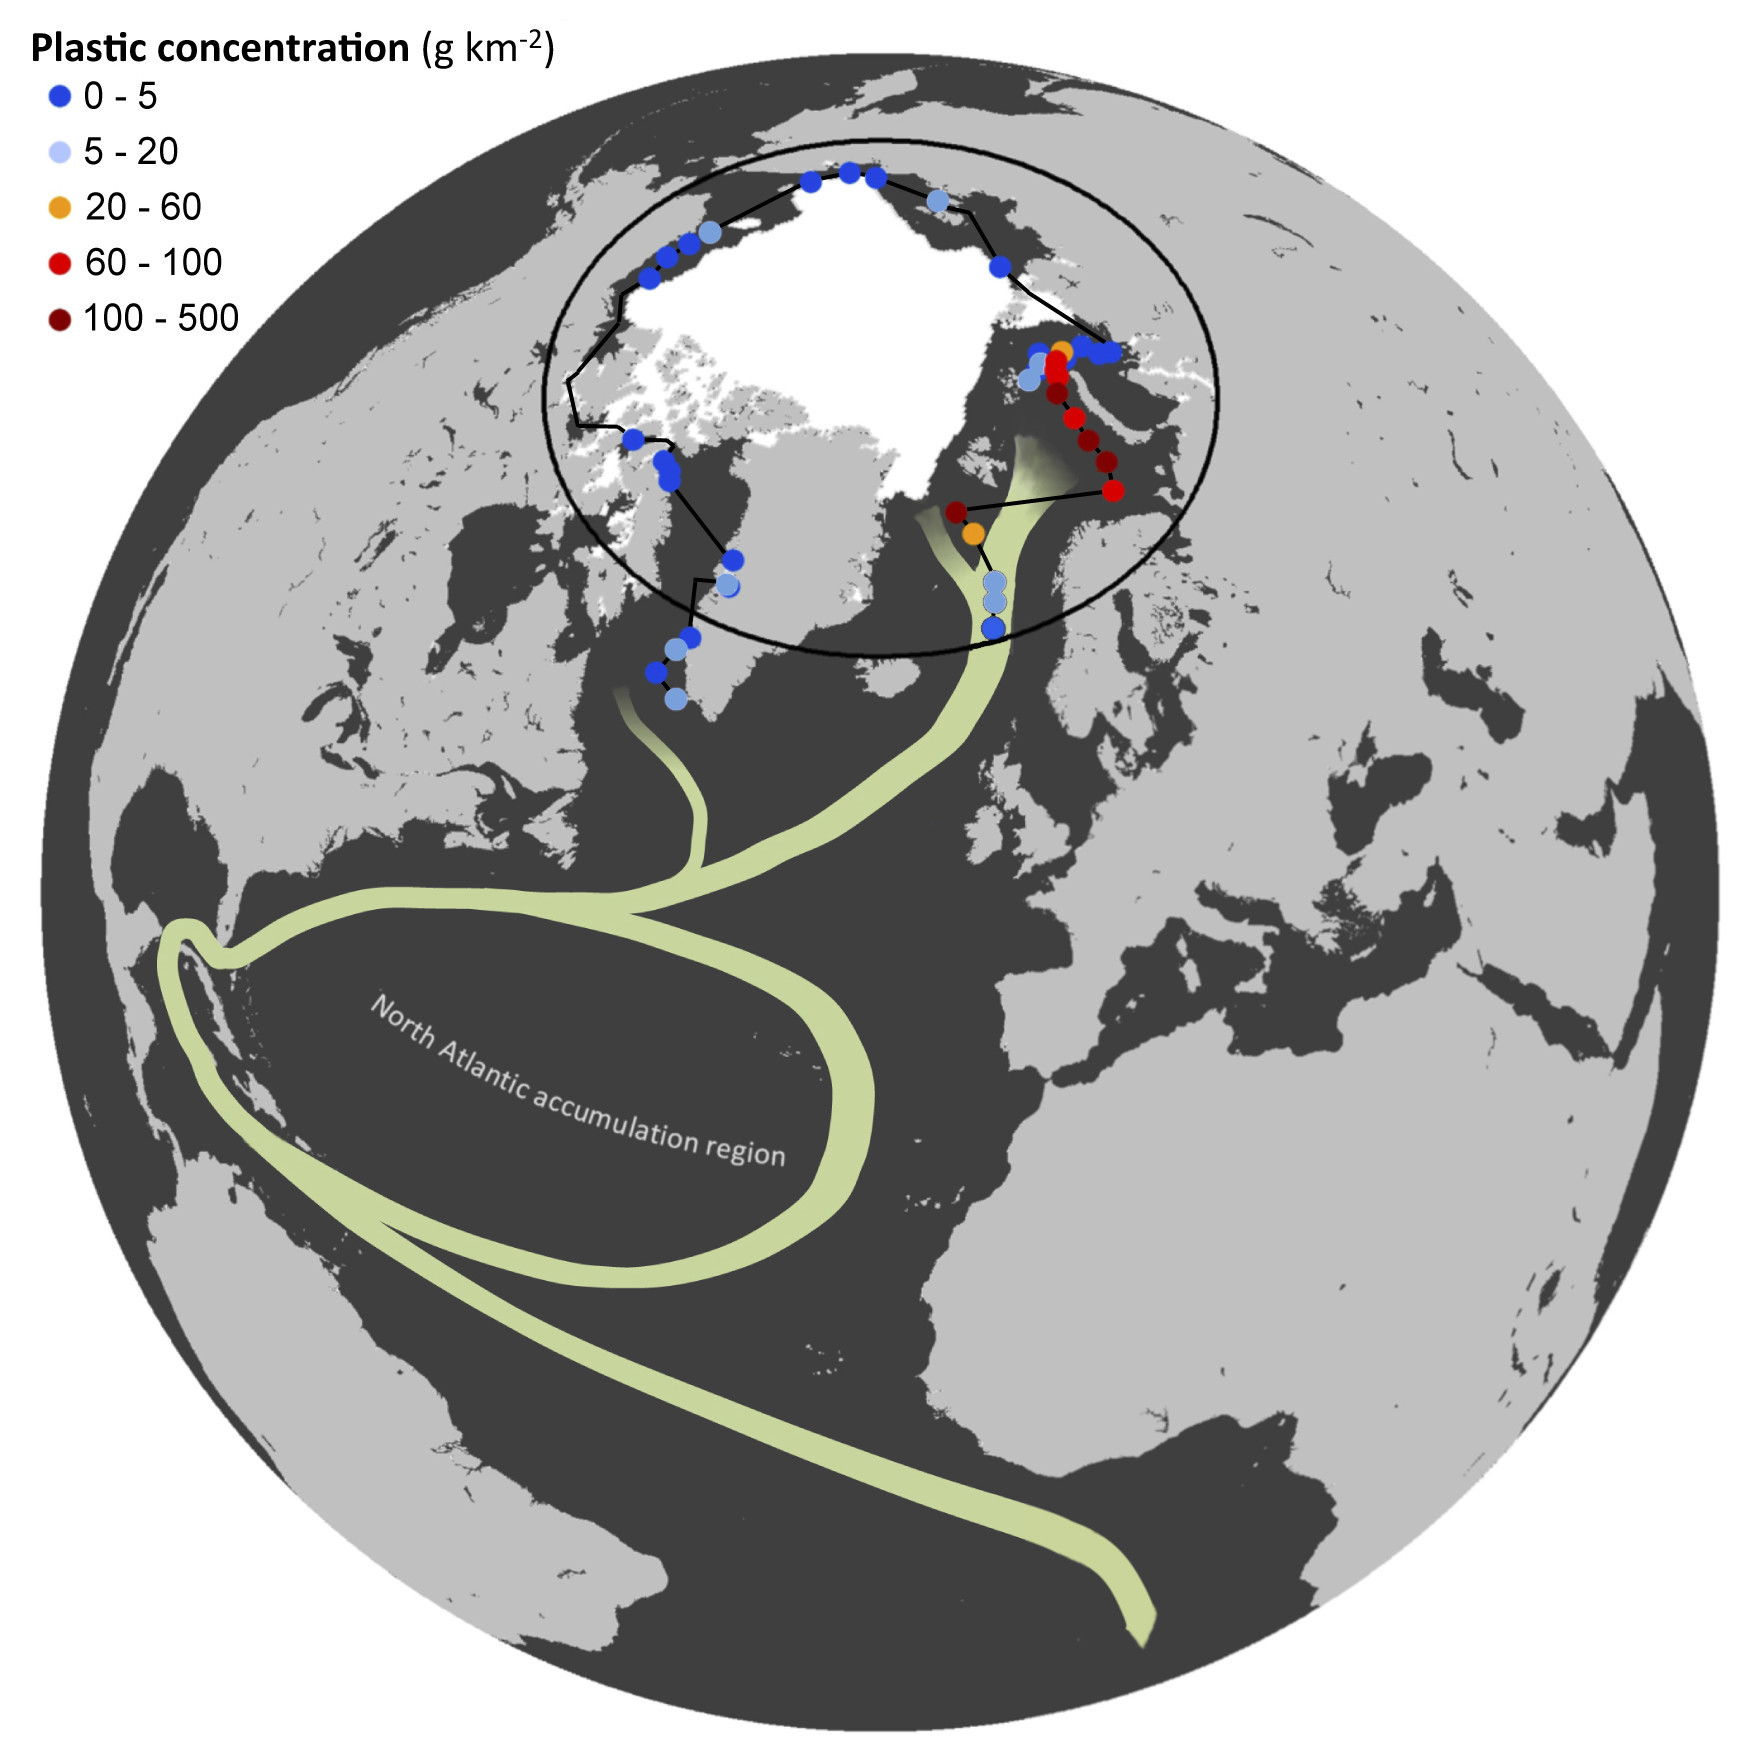 Plastic concentrations in the Arctic